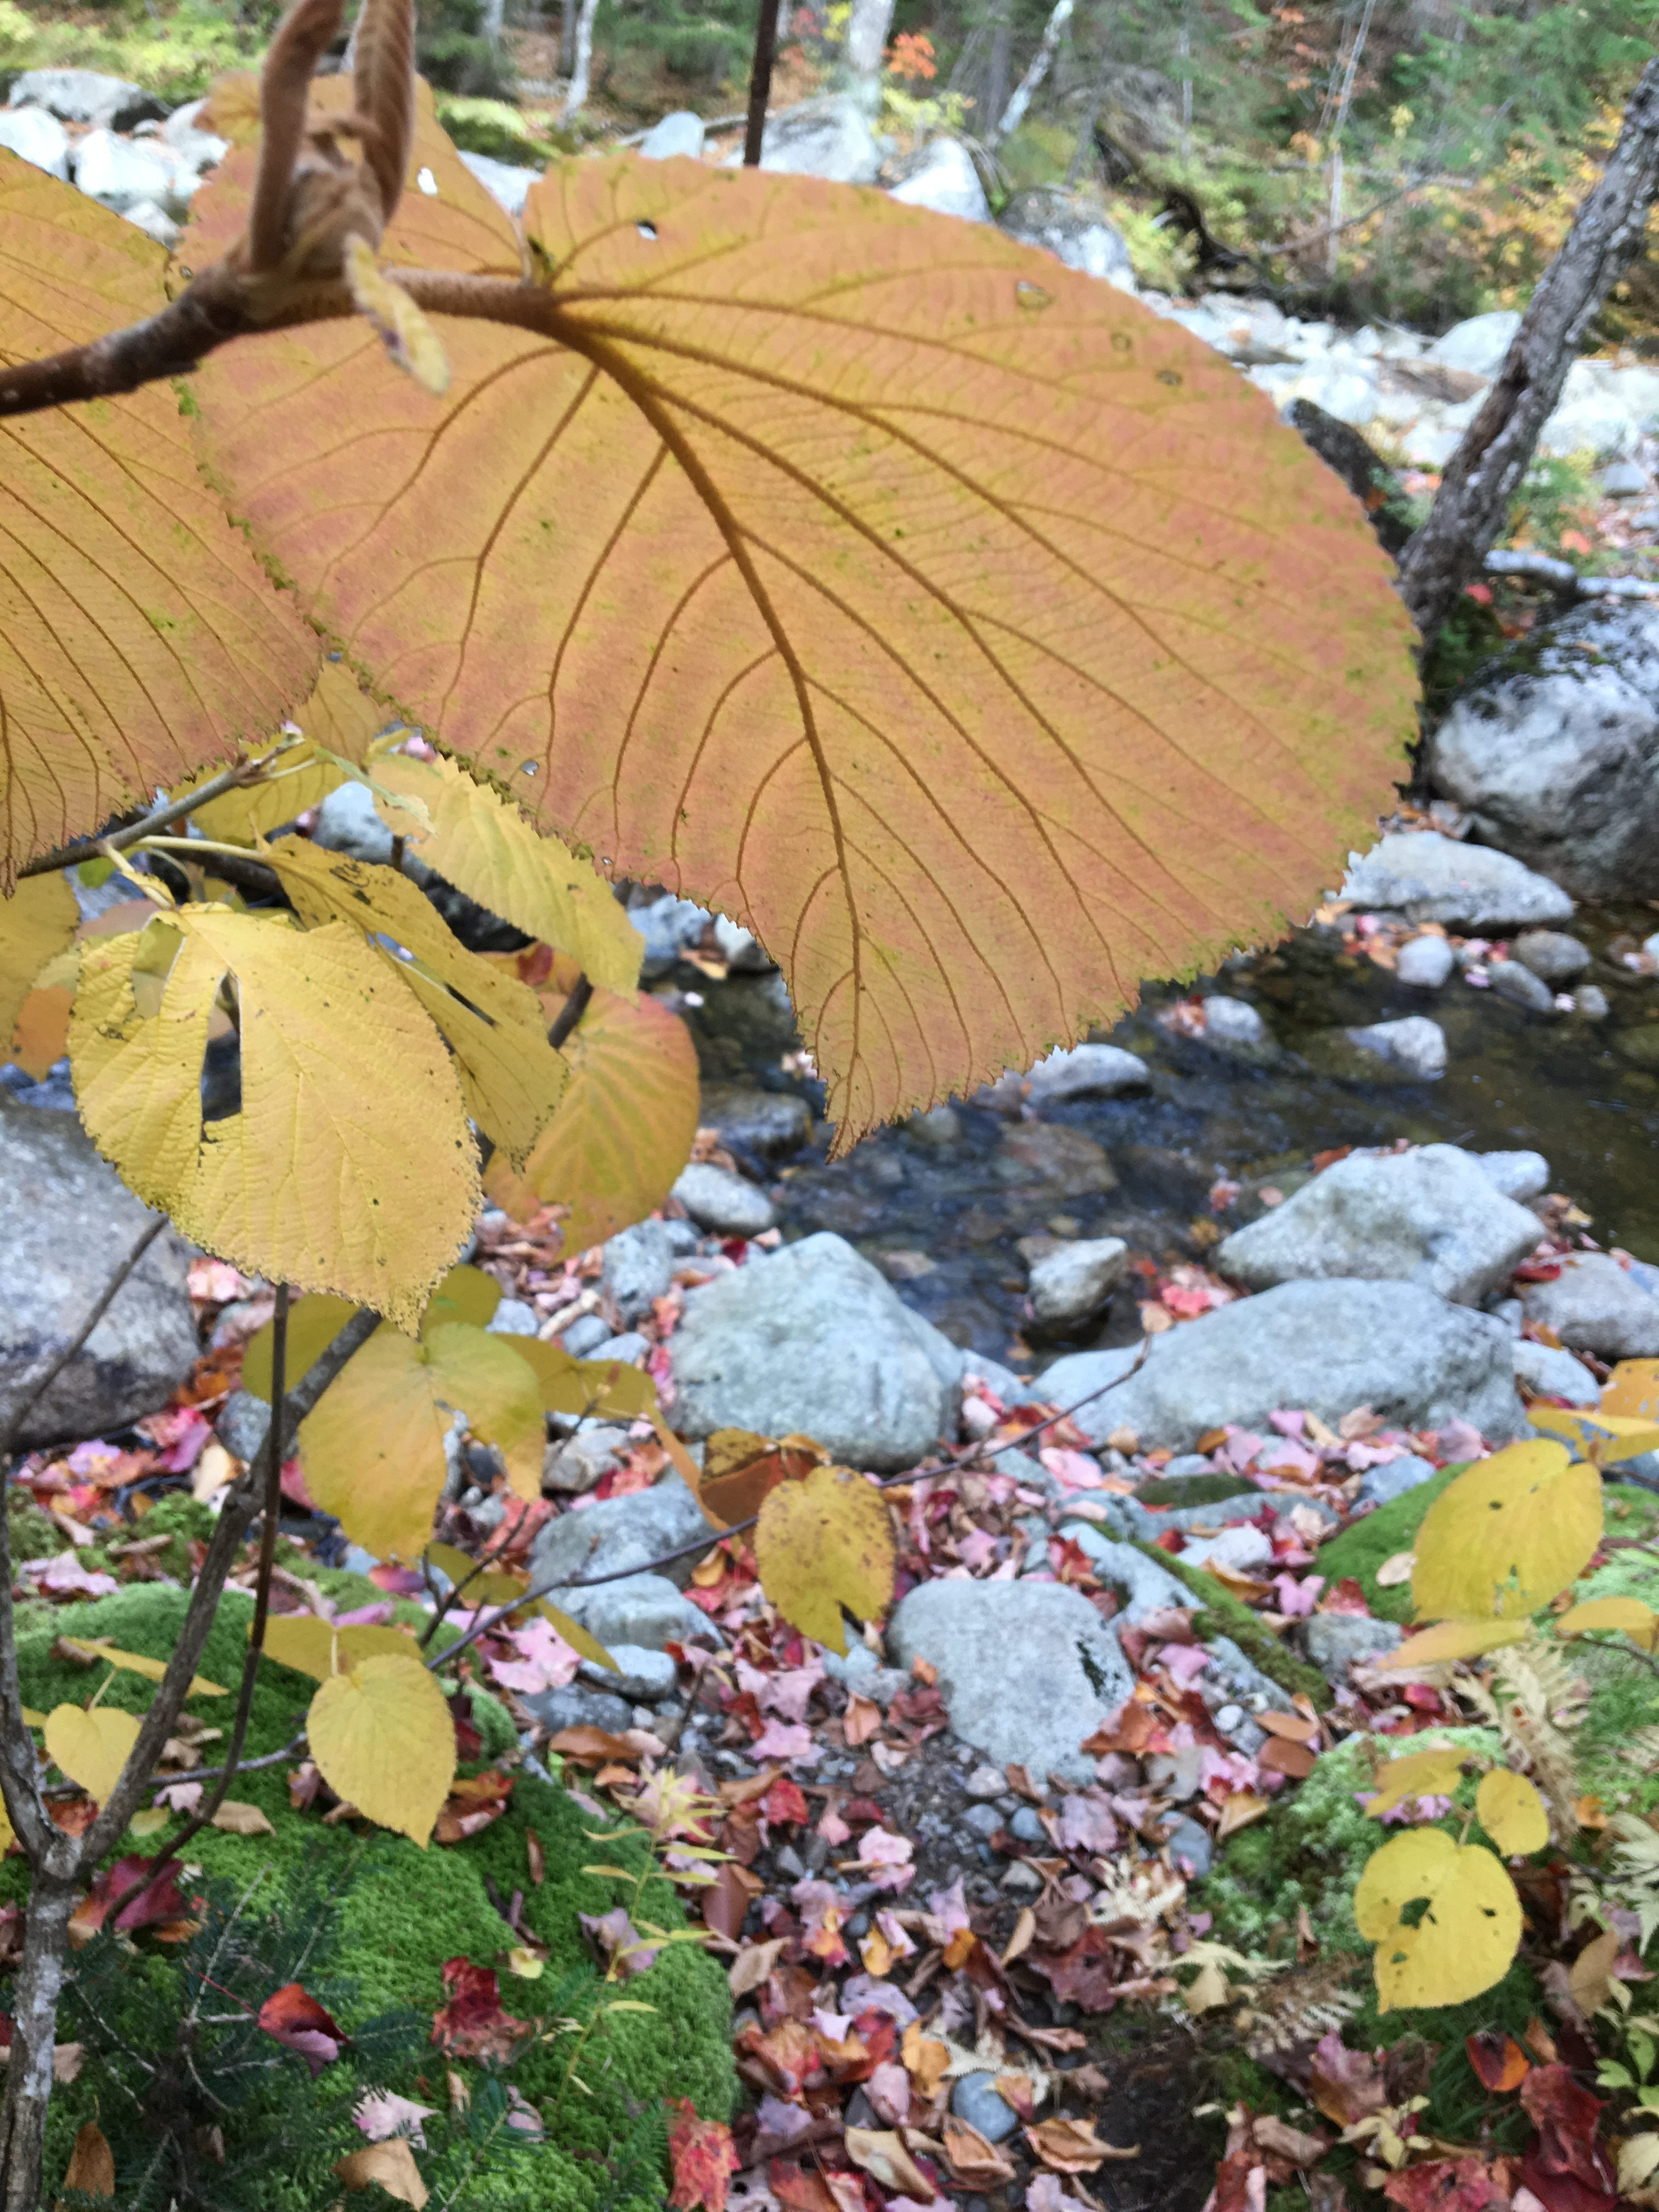 A closeup of a very large leaf, yellow with red tips and brown veins. In the background are more yellow leaves and a rocky stream.